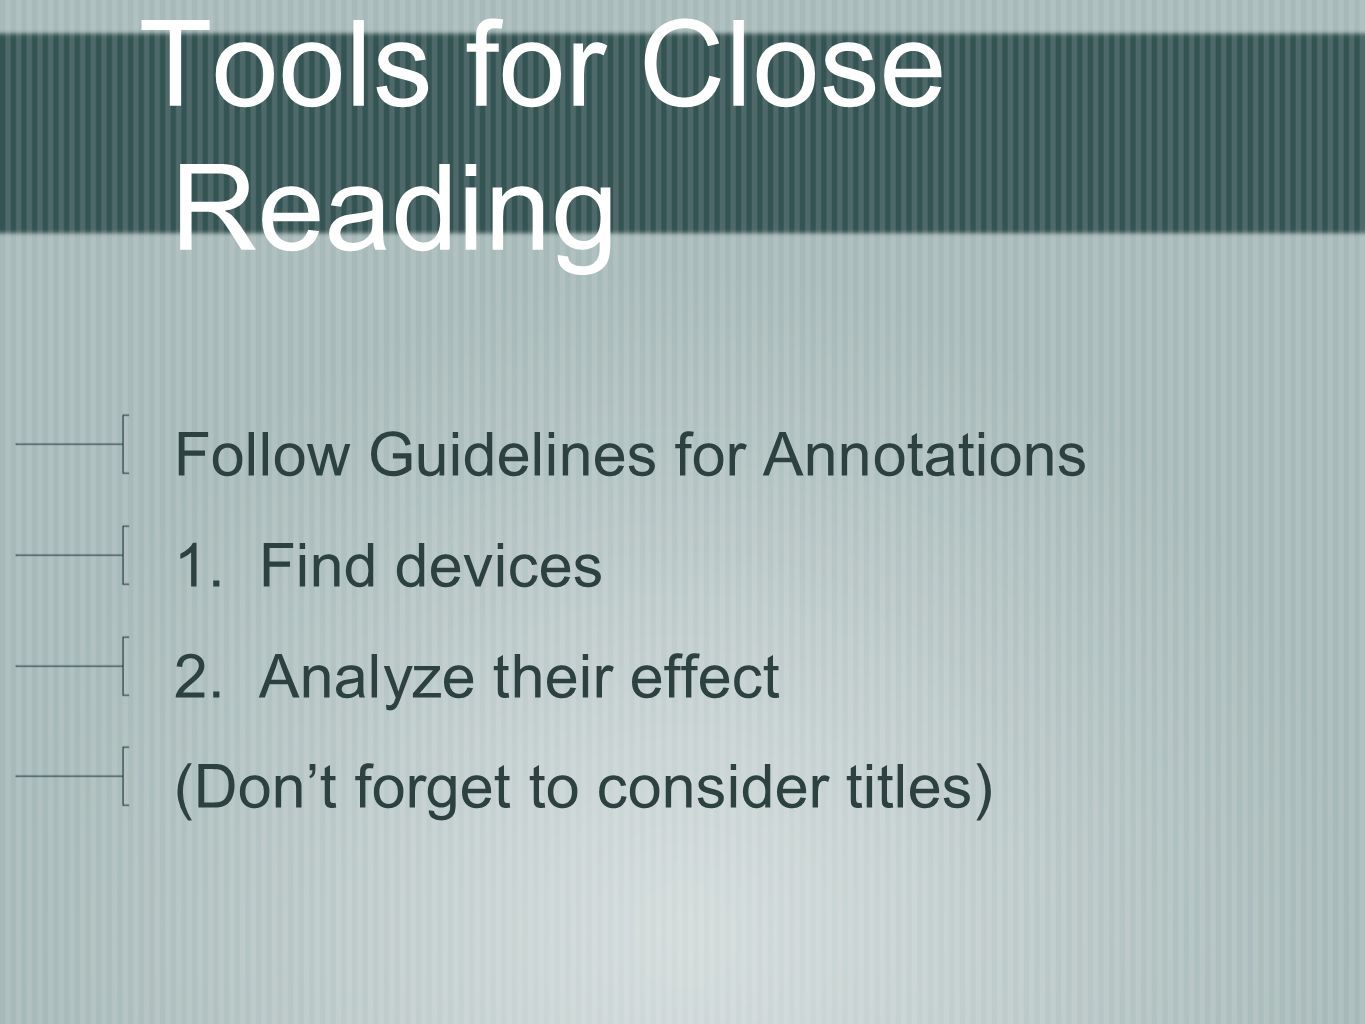 Tools for Close Reading Follow Guidelines for Annotations 1. Find devices 2. Analyze their effect (Don't forget to consider titles)